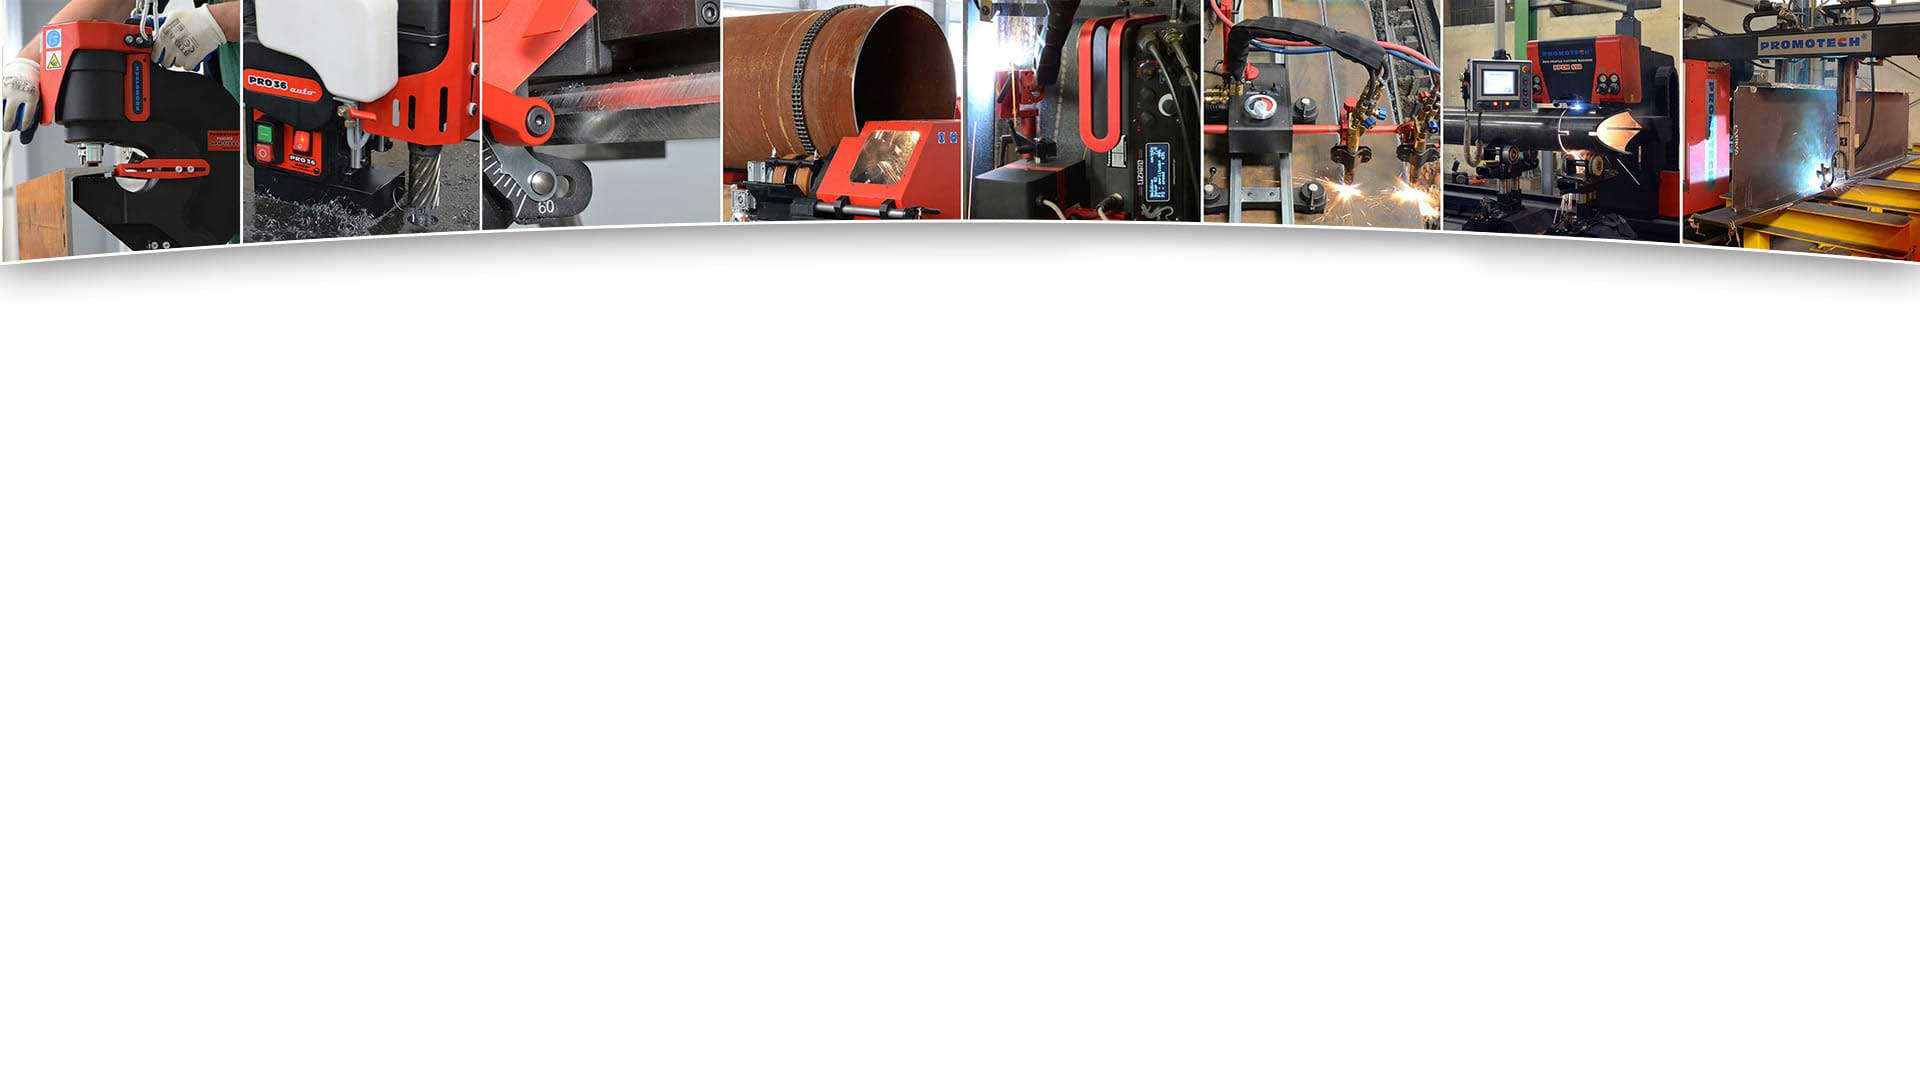 promotech-drilling-bevelling-welding-cutting-automation-1